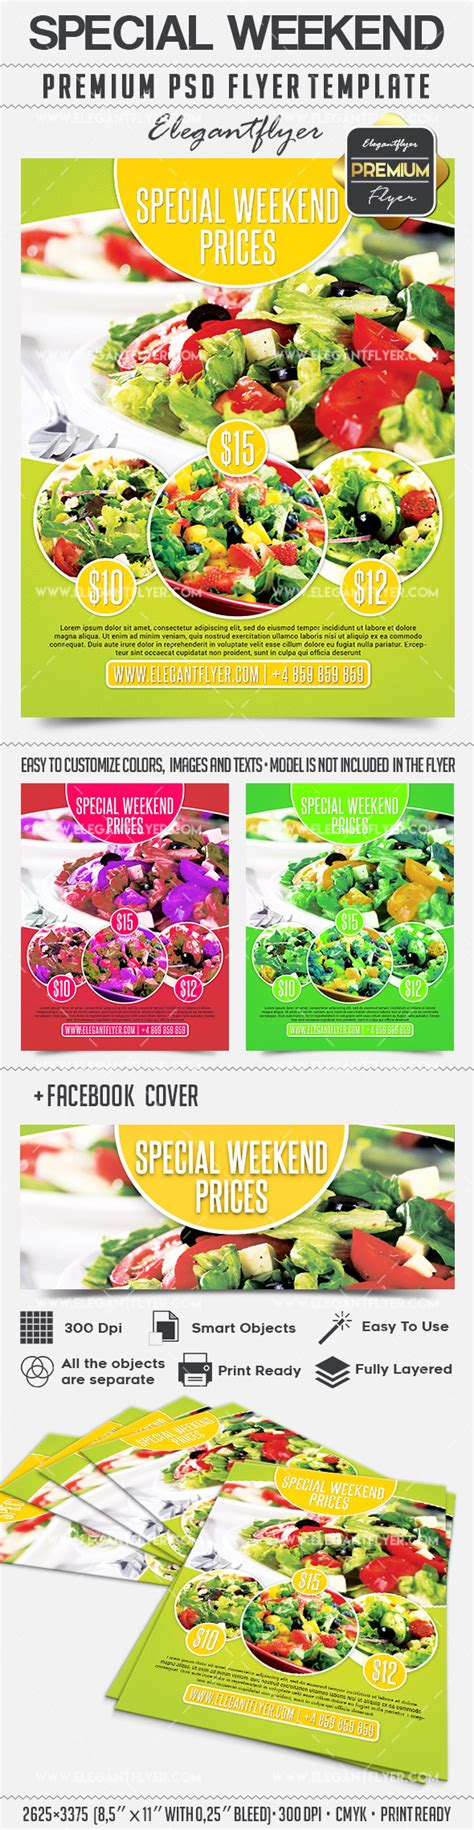 Special Weekend Offer Flyer Psd Template By Elegantflyer Specials Flyer Template